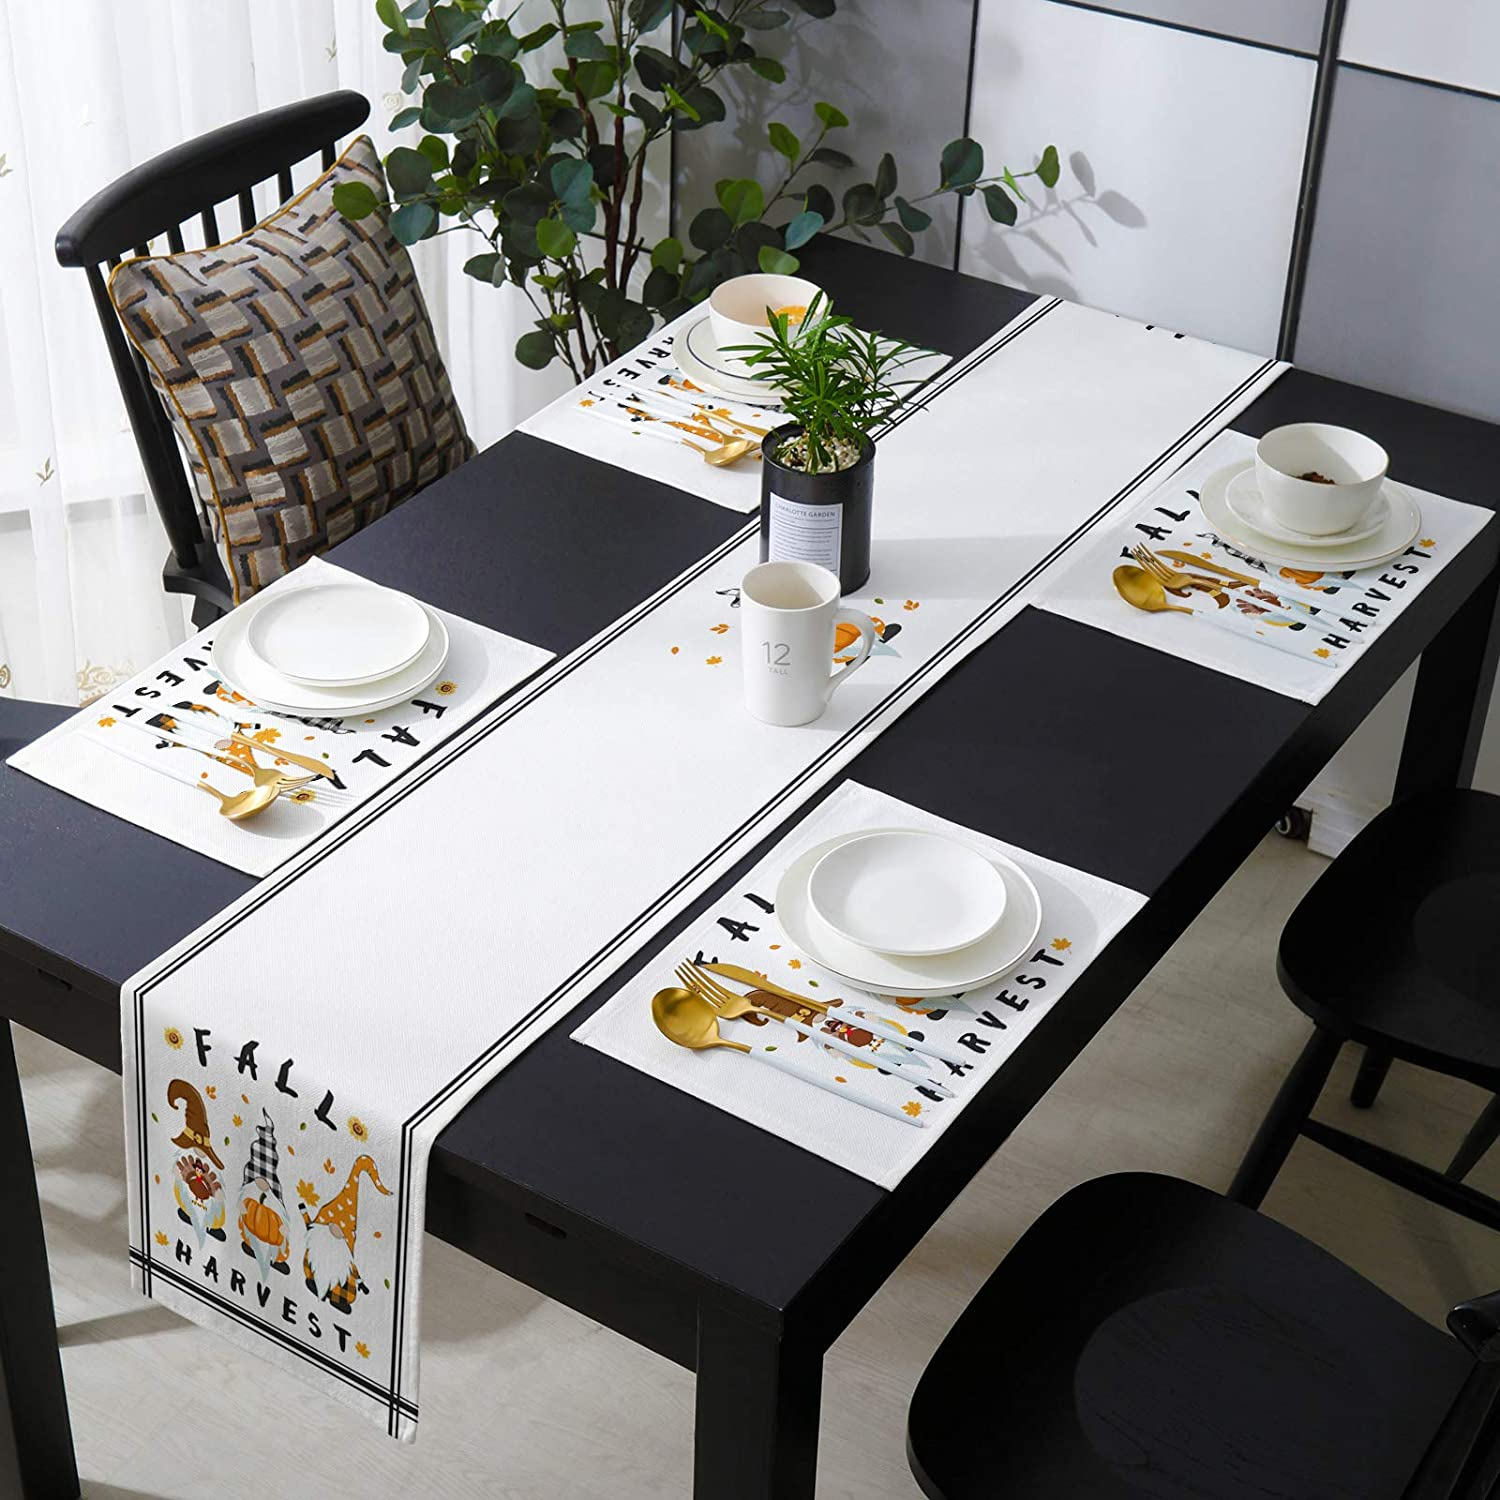 Chaven Home Table Runner with w 4 Max 55% OFF Japan Maker New Thanksgiving Placemats Gnomes